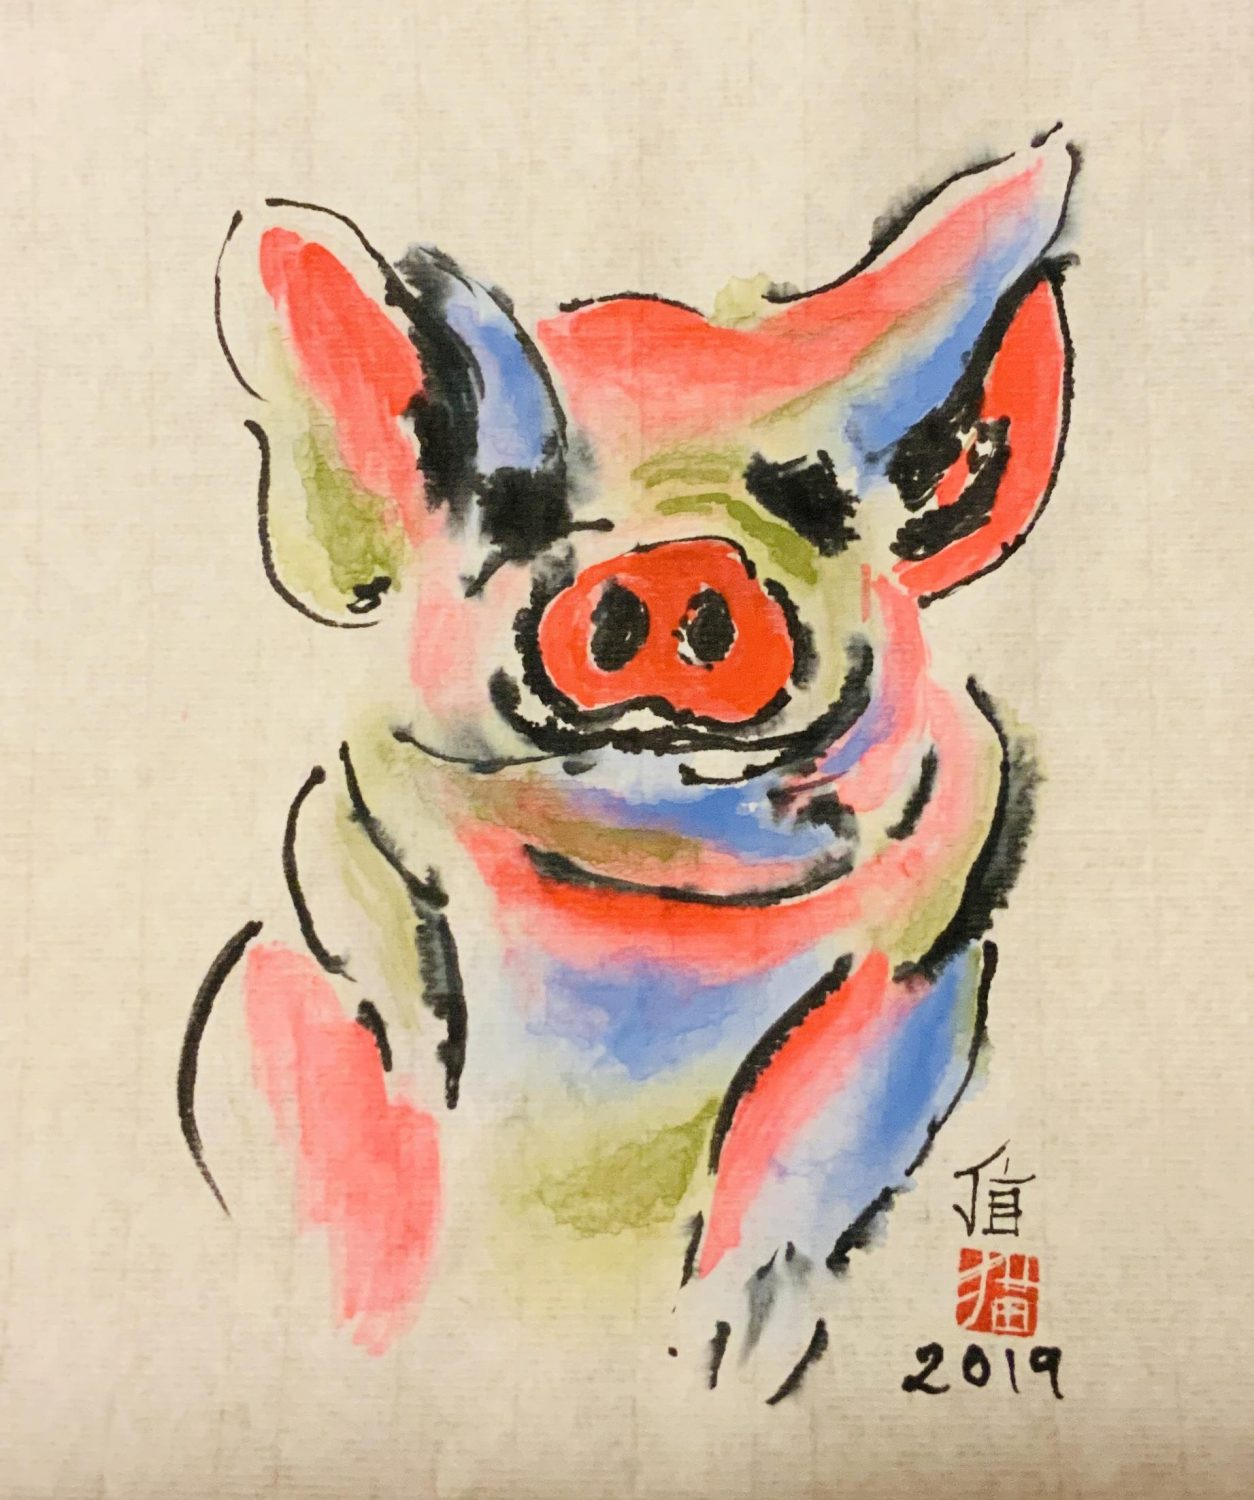 2019 Year of the pig by Joanna Brown